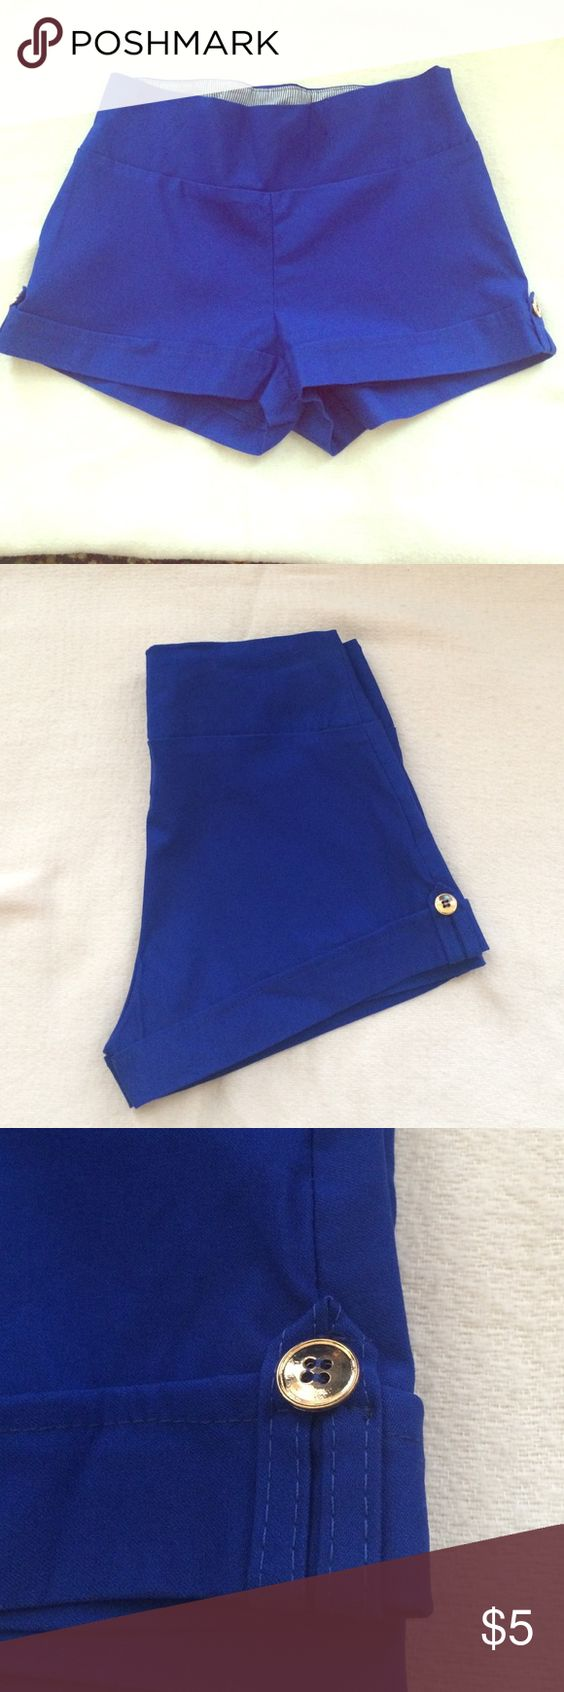 Stretchy shorts Adorable deep blue stretchy shorts with a button embellishment on the side of each leg. Wide waist band w/ a faux cuff at the legs. Size: Med Shorts